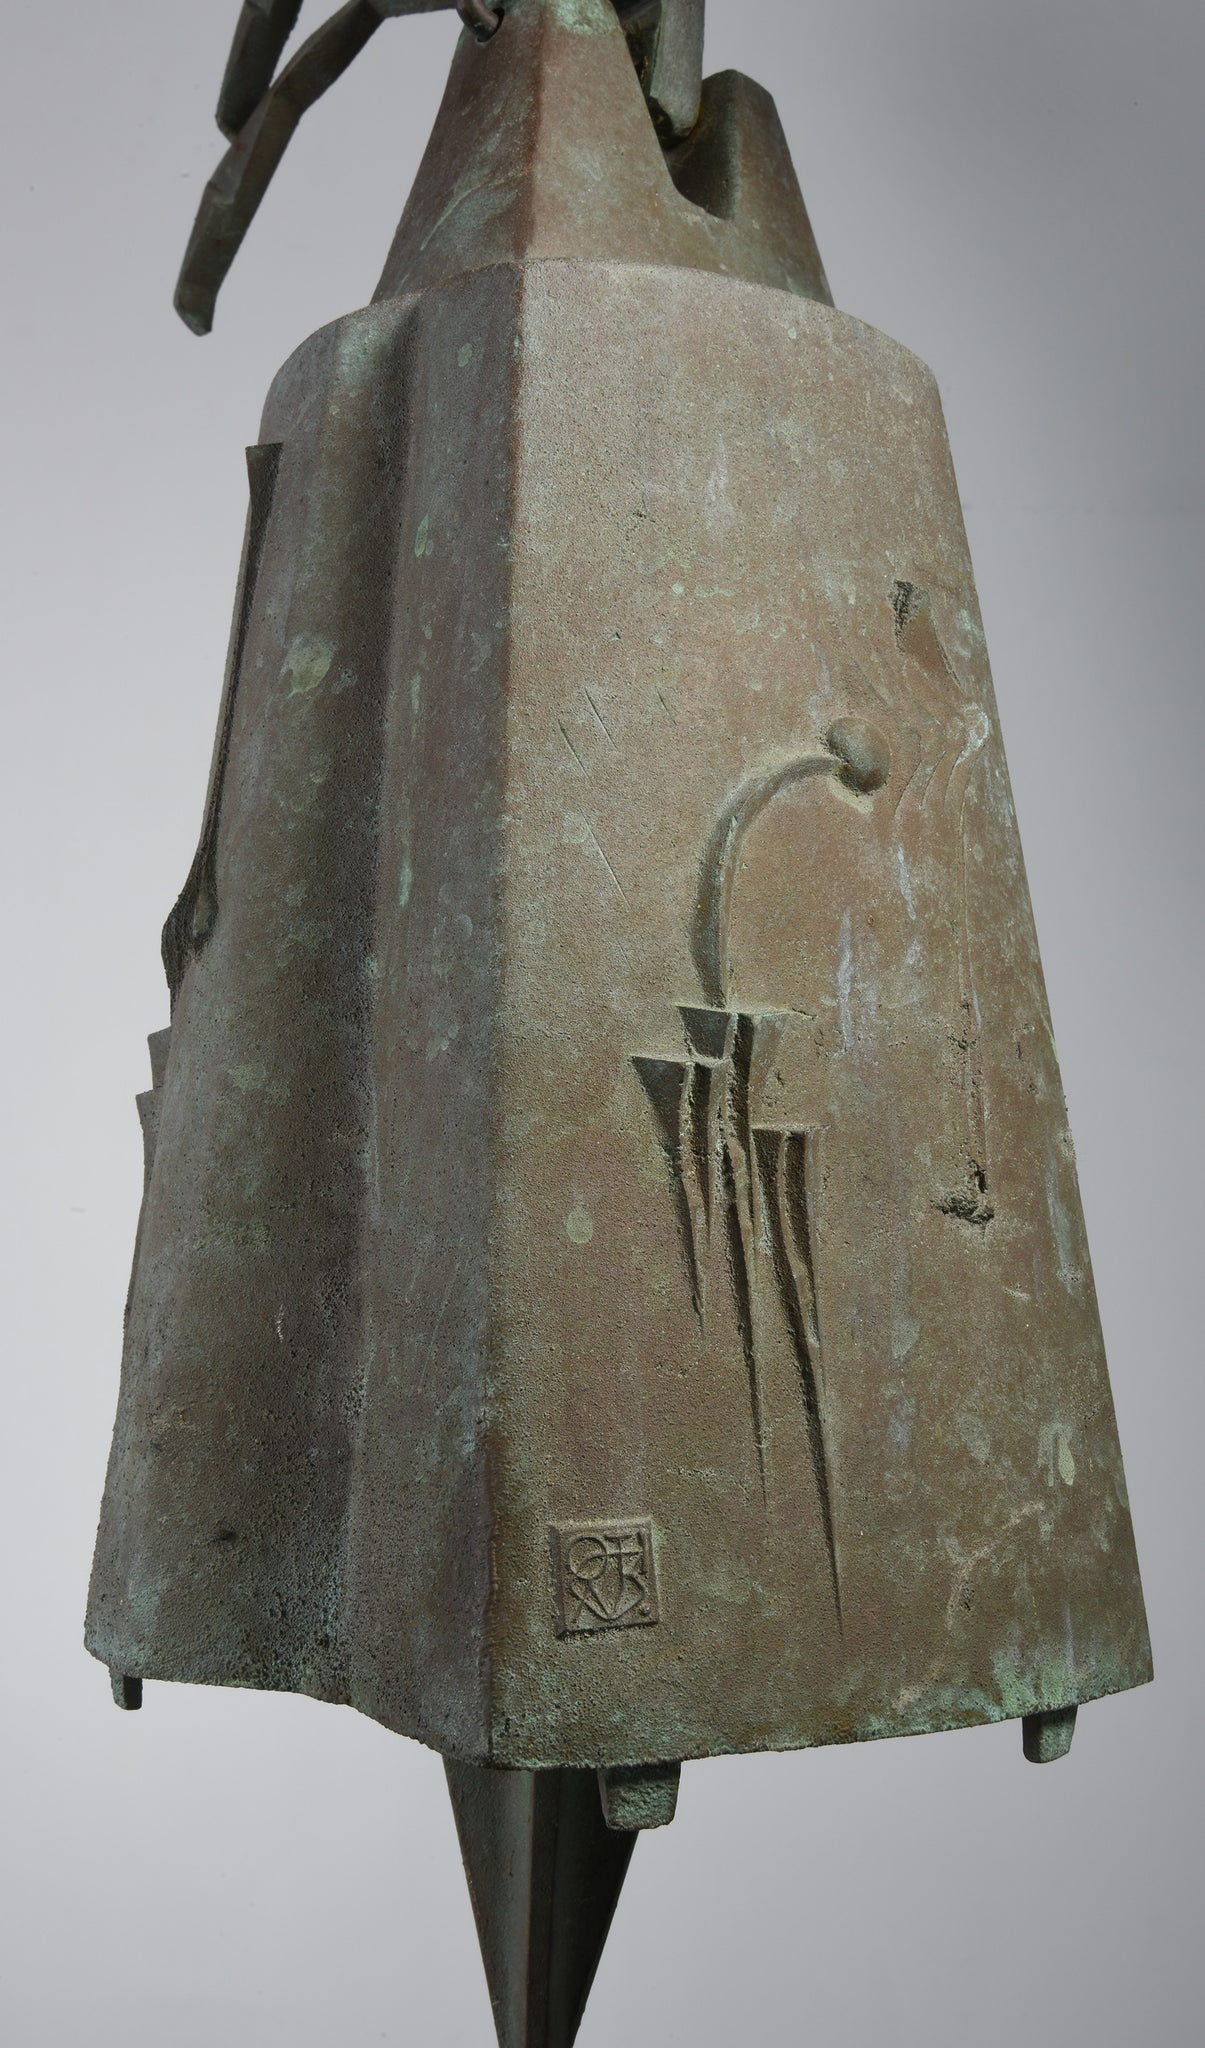 Large Paolo Soleri Hanging Bell in Cast Bronze, 1970s